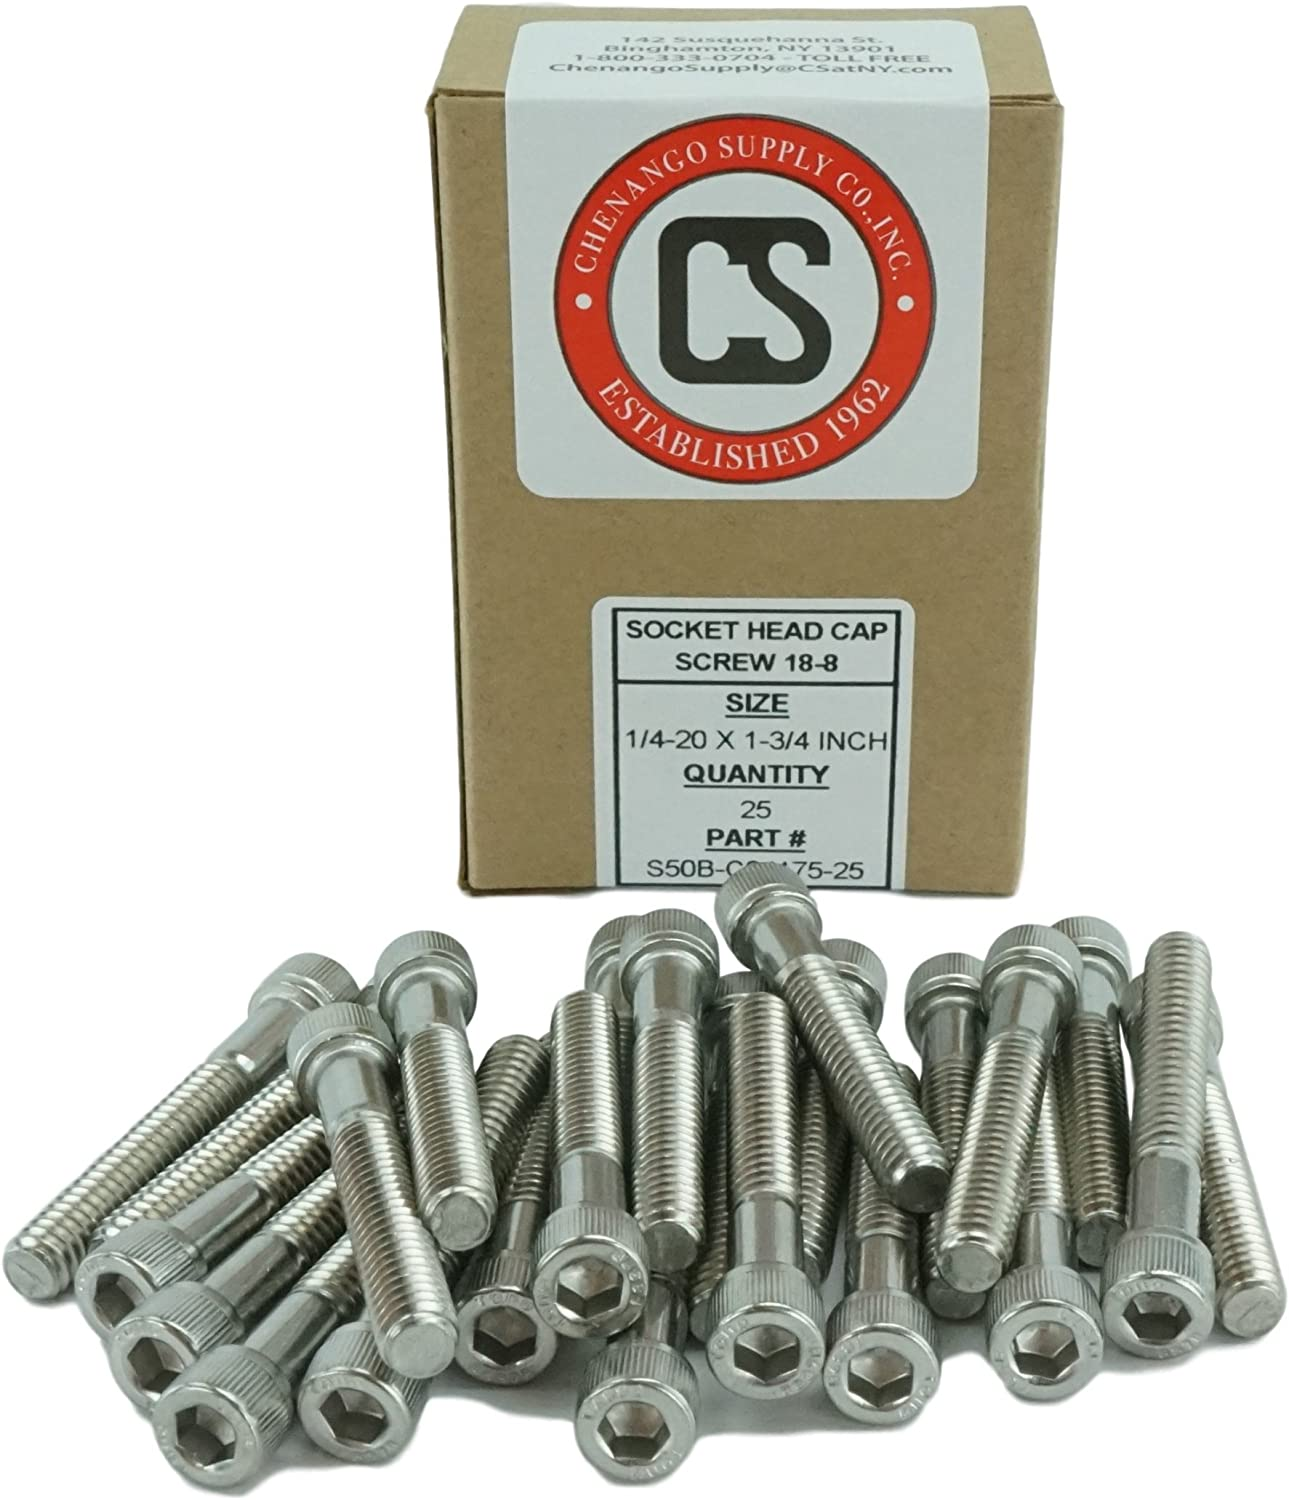 Stainless 1//4-20 x 2 1//4-20 x 2 1//2 to 3 Available Coarse Thread Stainless Steel 18-8 Socket Head Cap Screws Full Thread Hex Drive